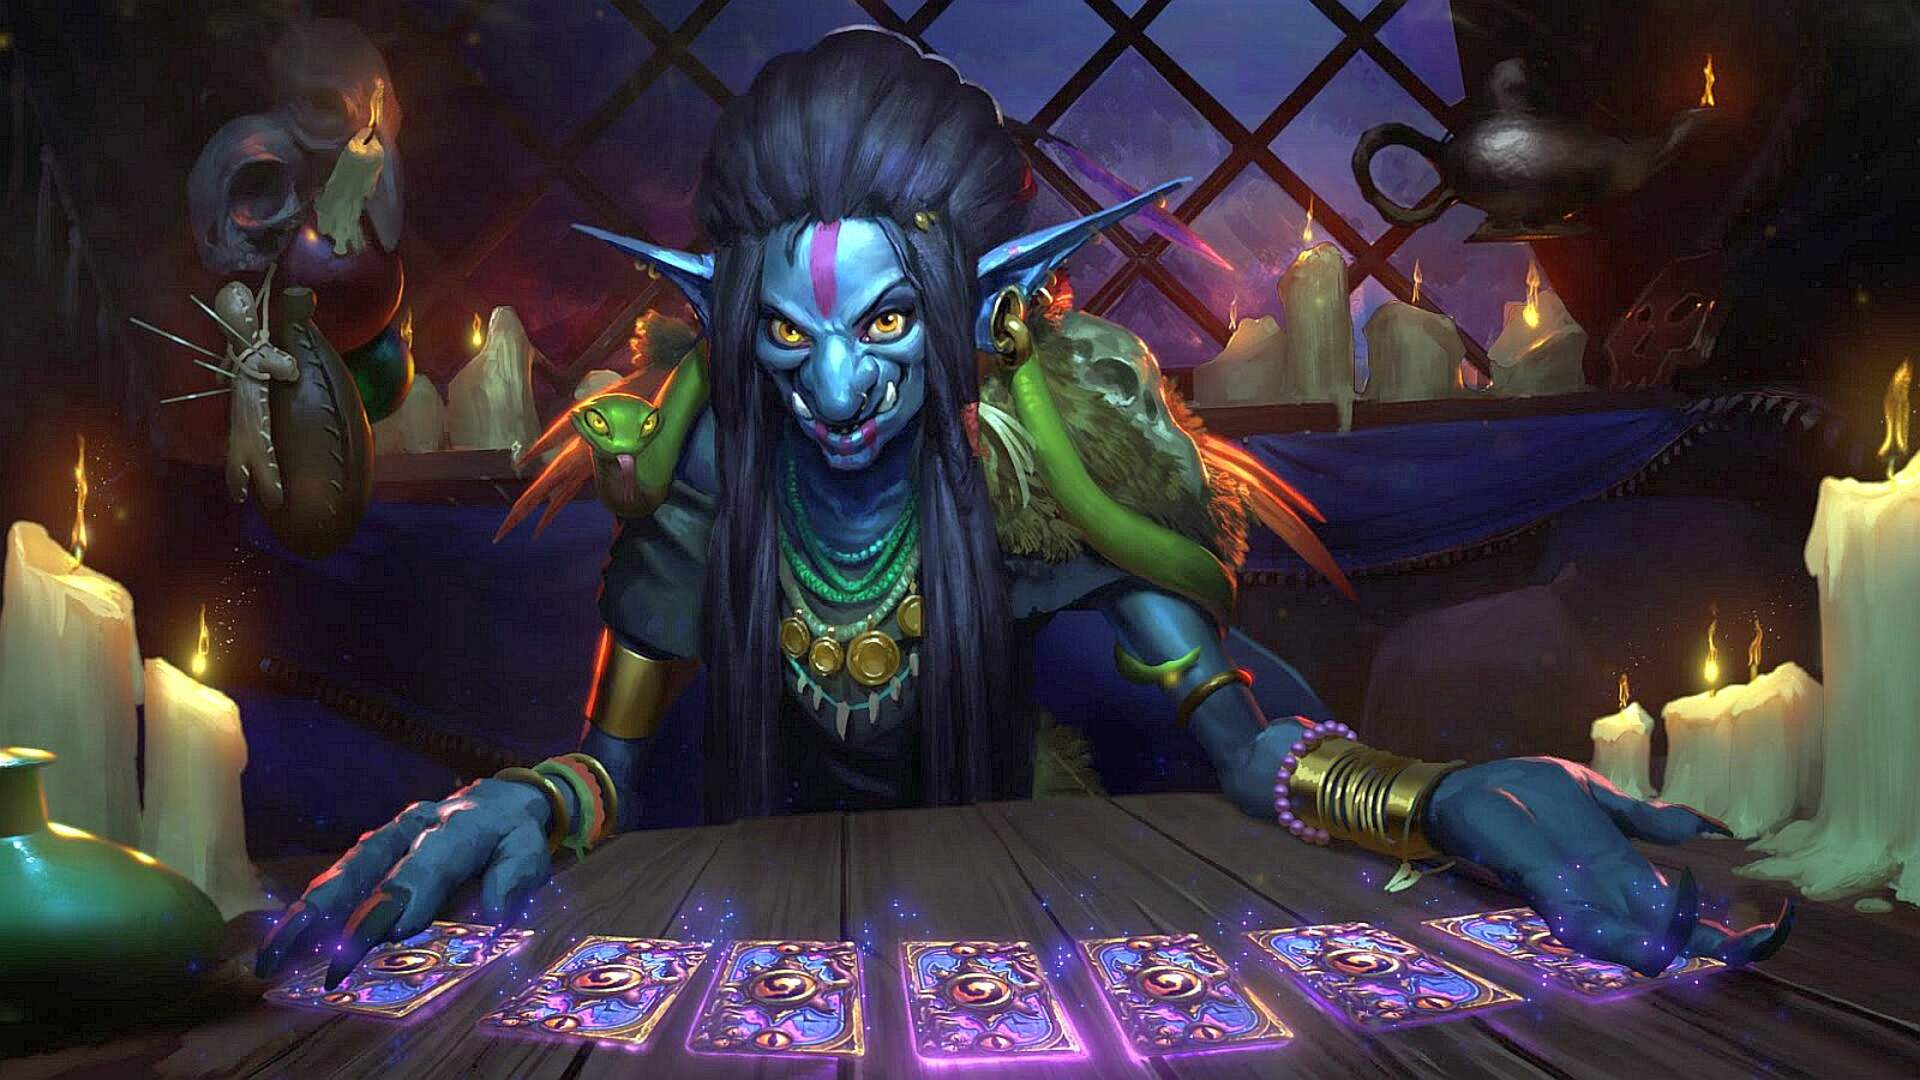 Blizzard Improves Legendary Card Draws in Hearthstone Packs for Upcoming Expansion